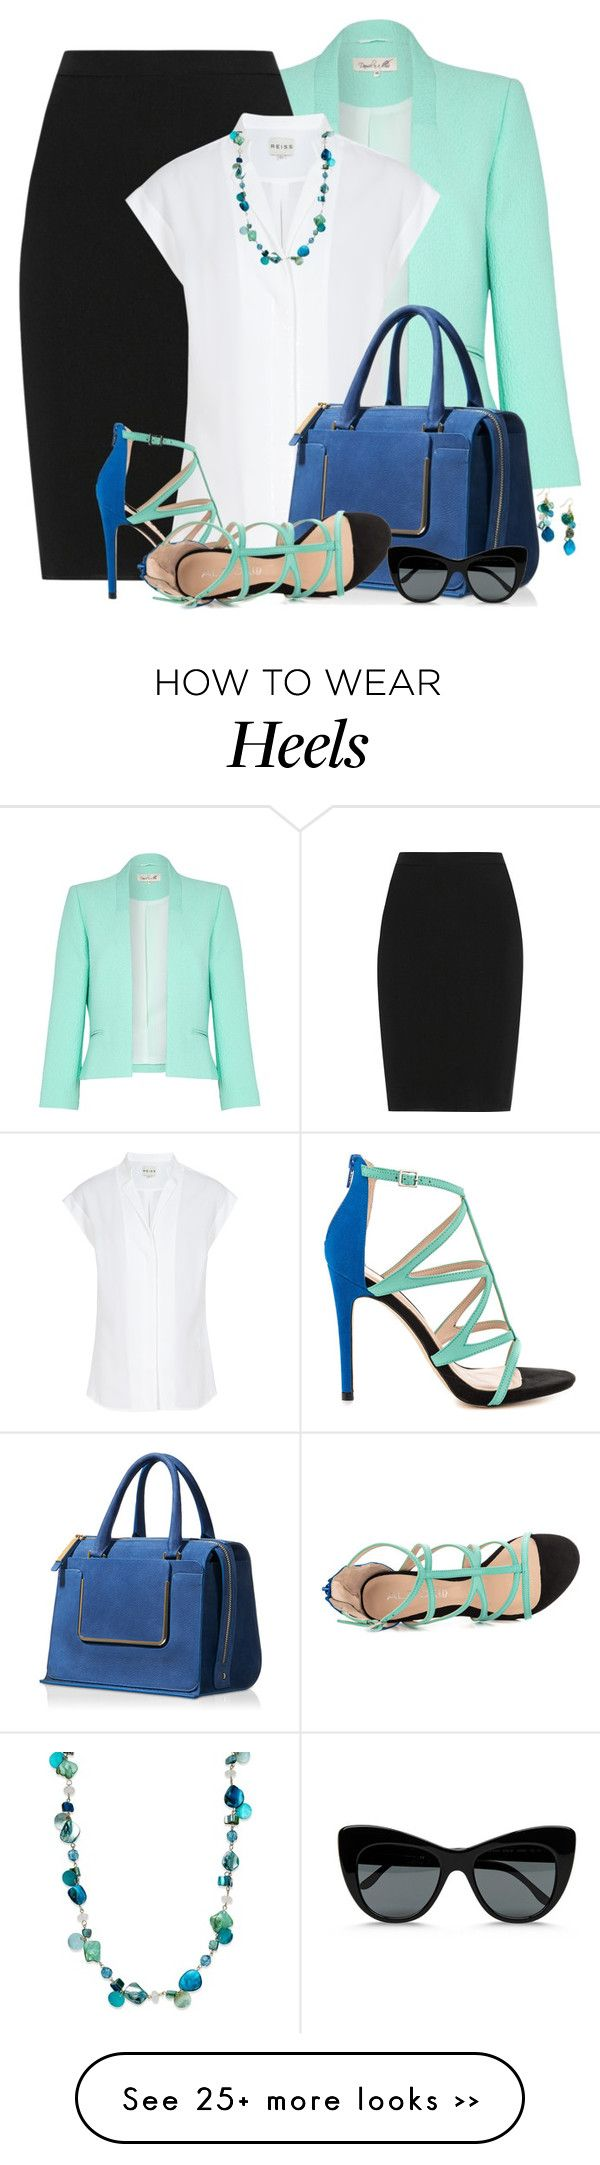 """Aldo Multi-Colored Heeled Sandal"" by brendariley-1 on Polyvore"